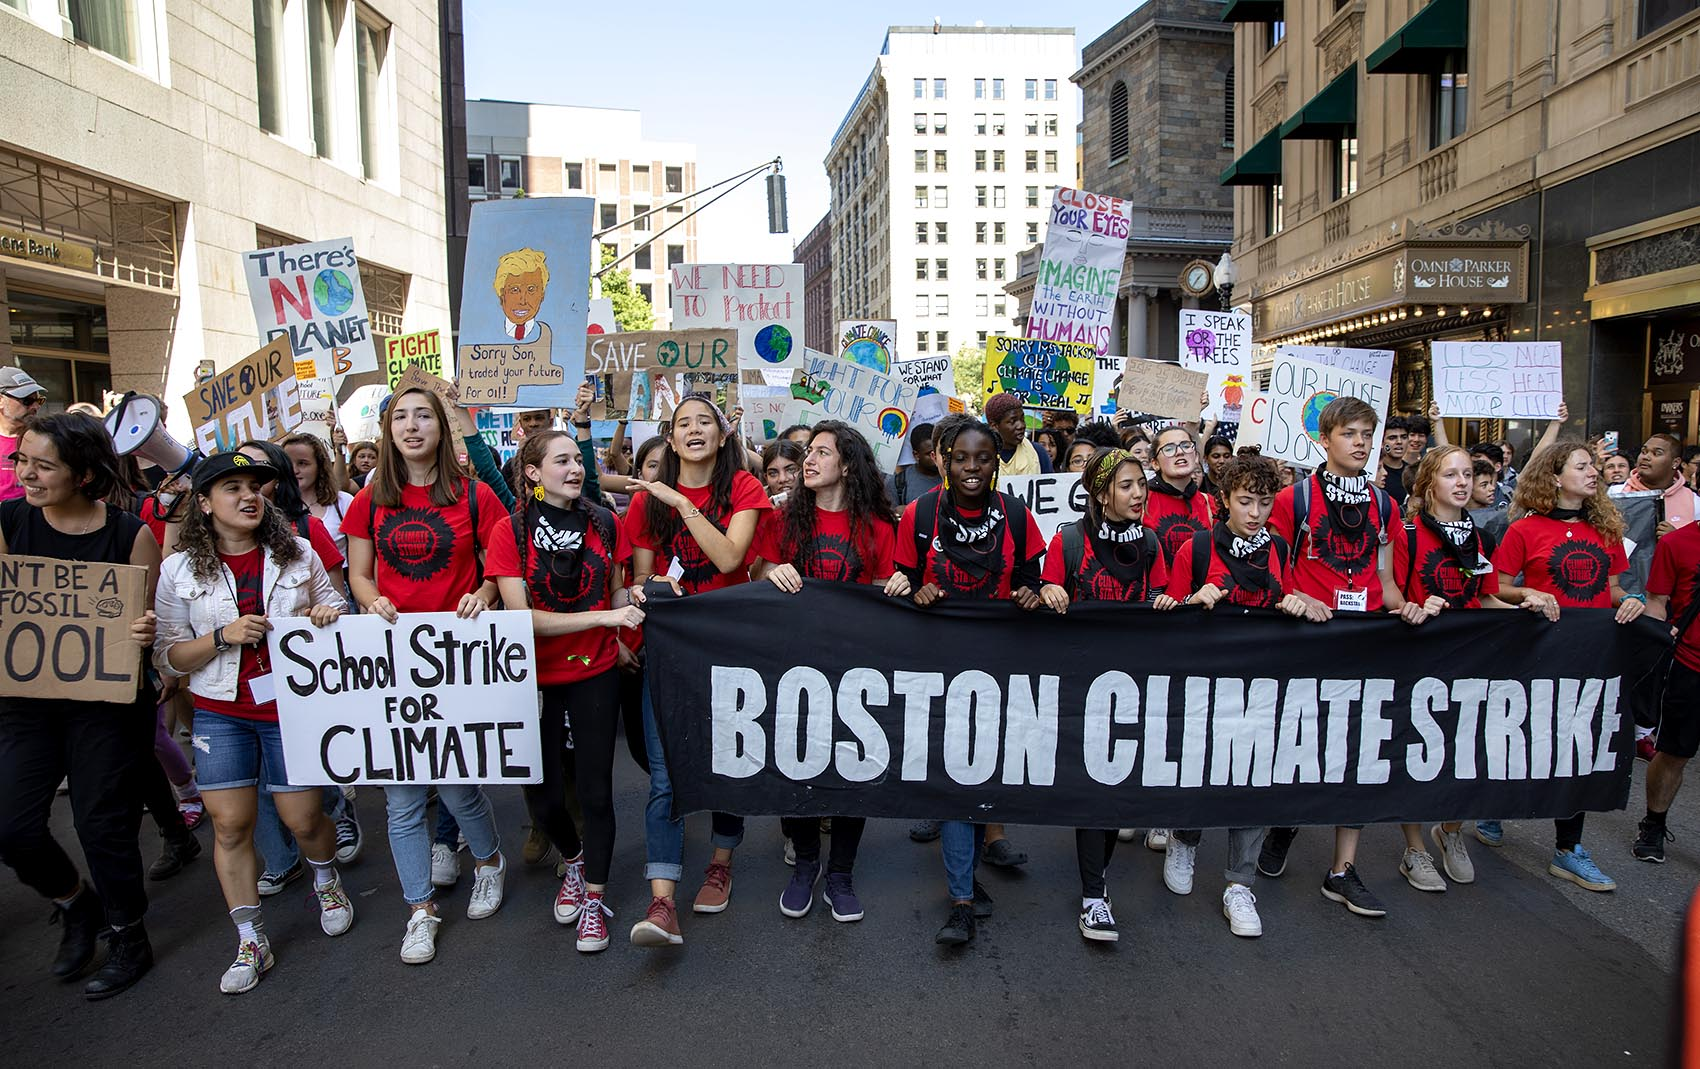 Scenes From The Youth Climate Strike In Boston